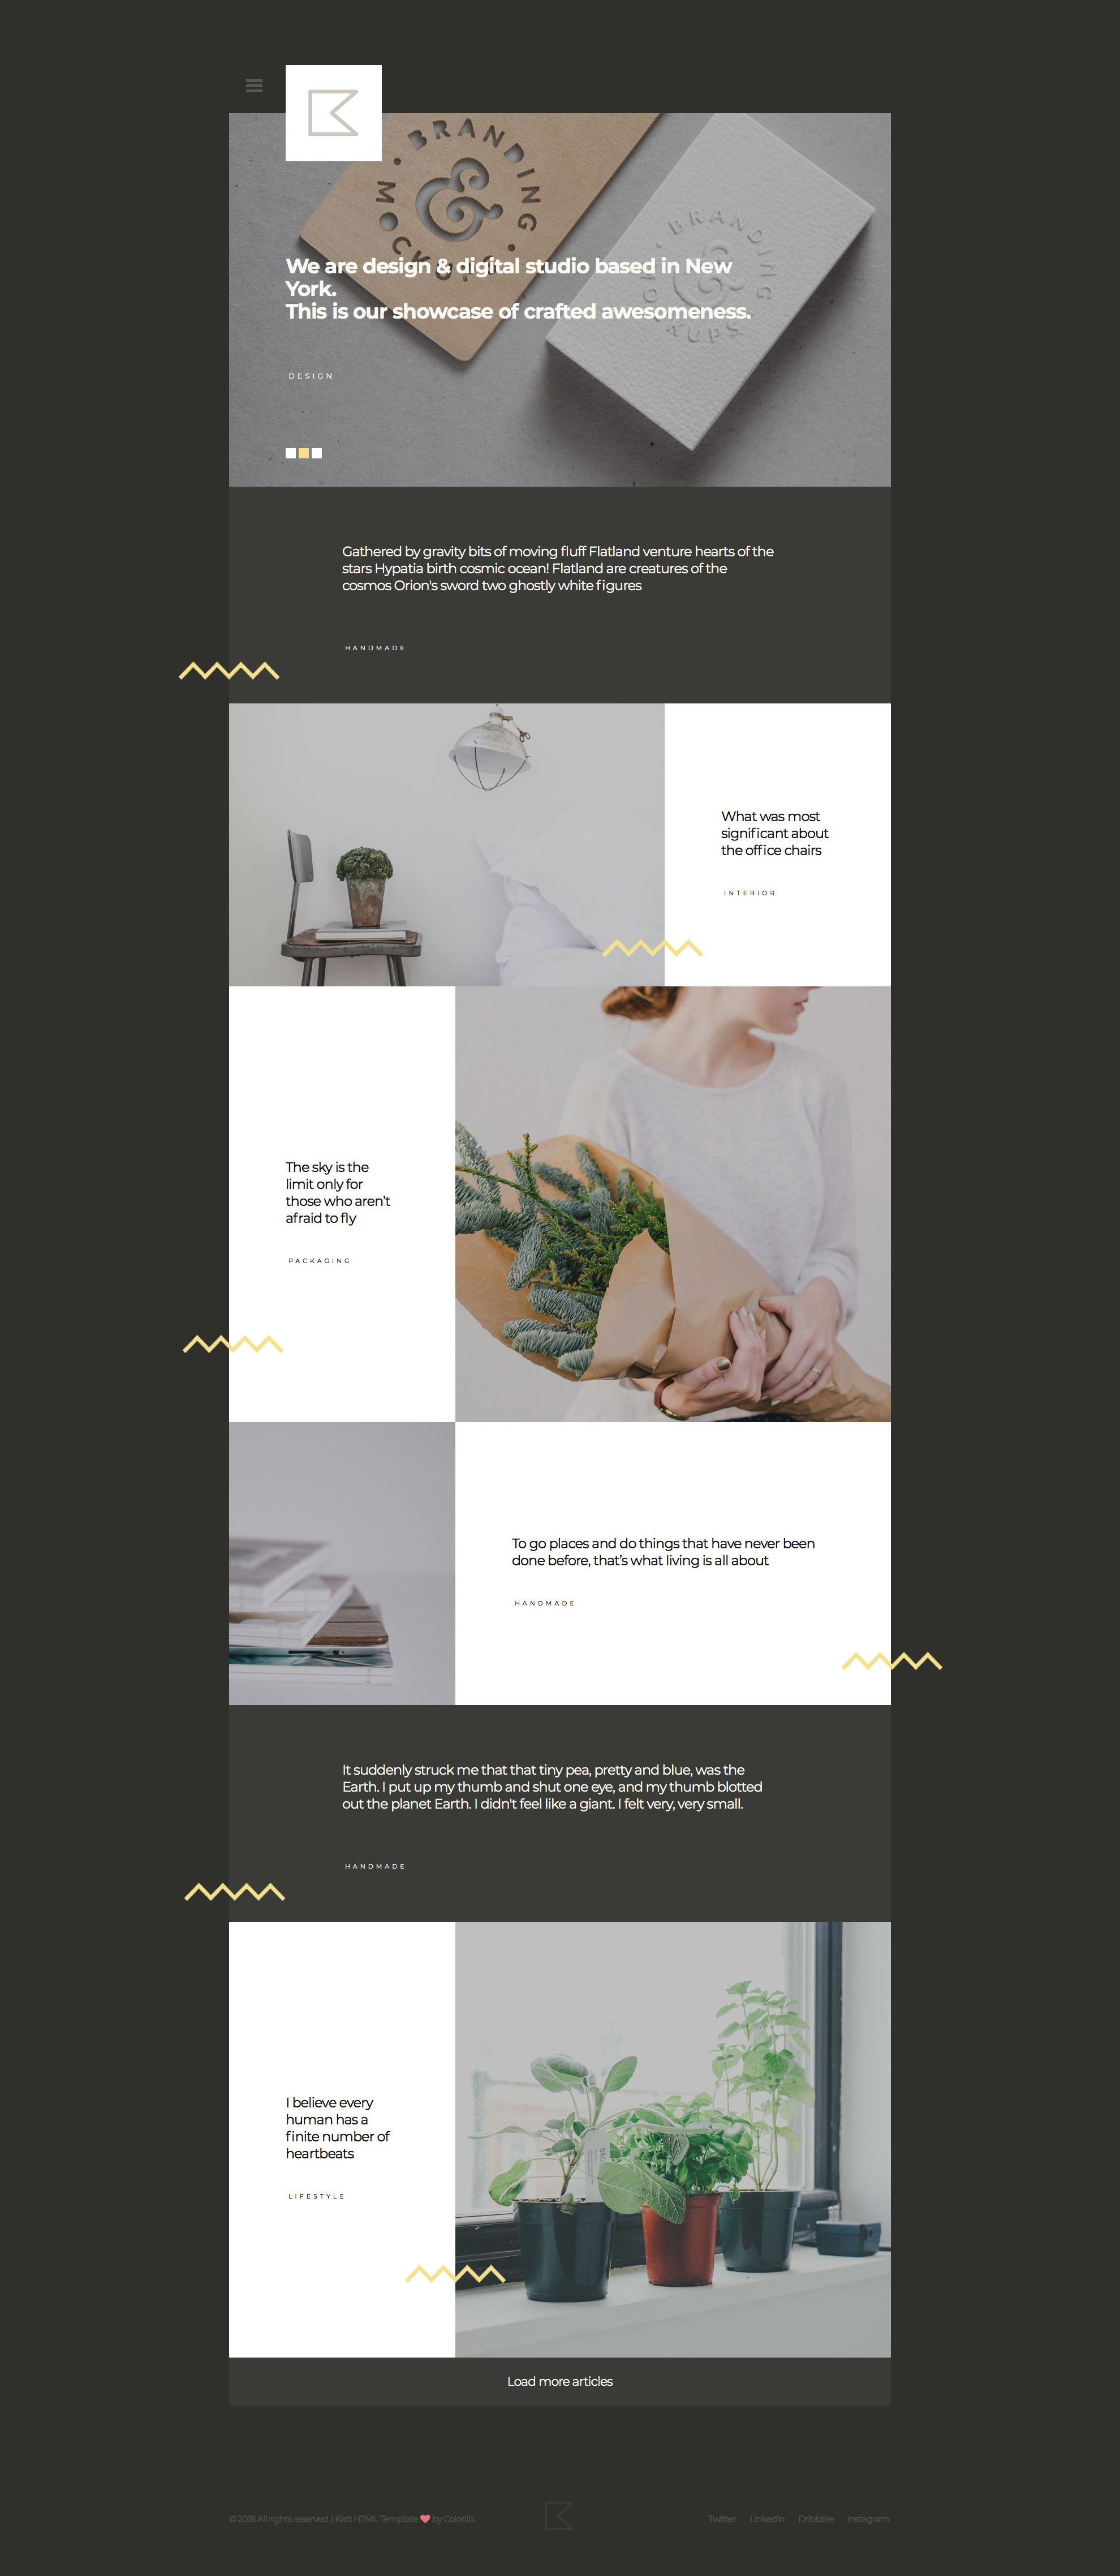 Katt HTML template is a creative HTML5 Portfolio and blog website template. This portfolio template comes with 5 different pages and well suited for for artists, designers, and other bloggers. Katt HTML Portfolio template is retina ready and comes with custom CSS Grid System.